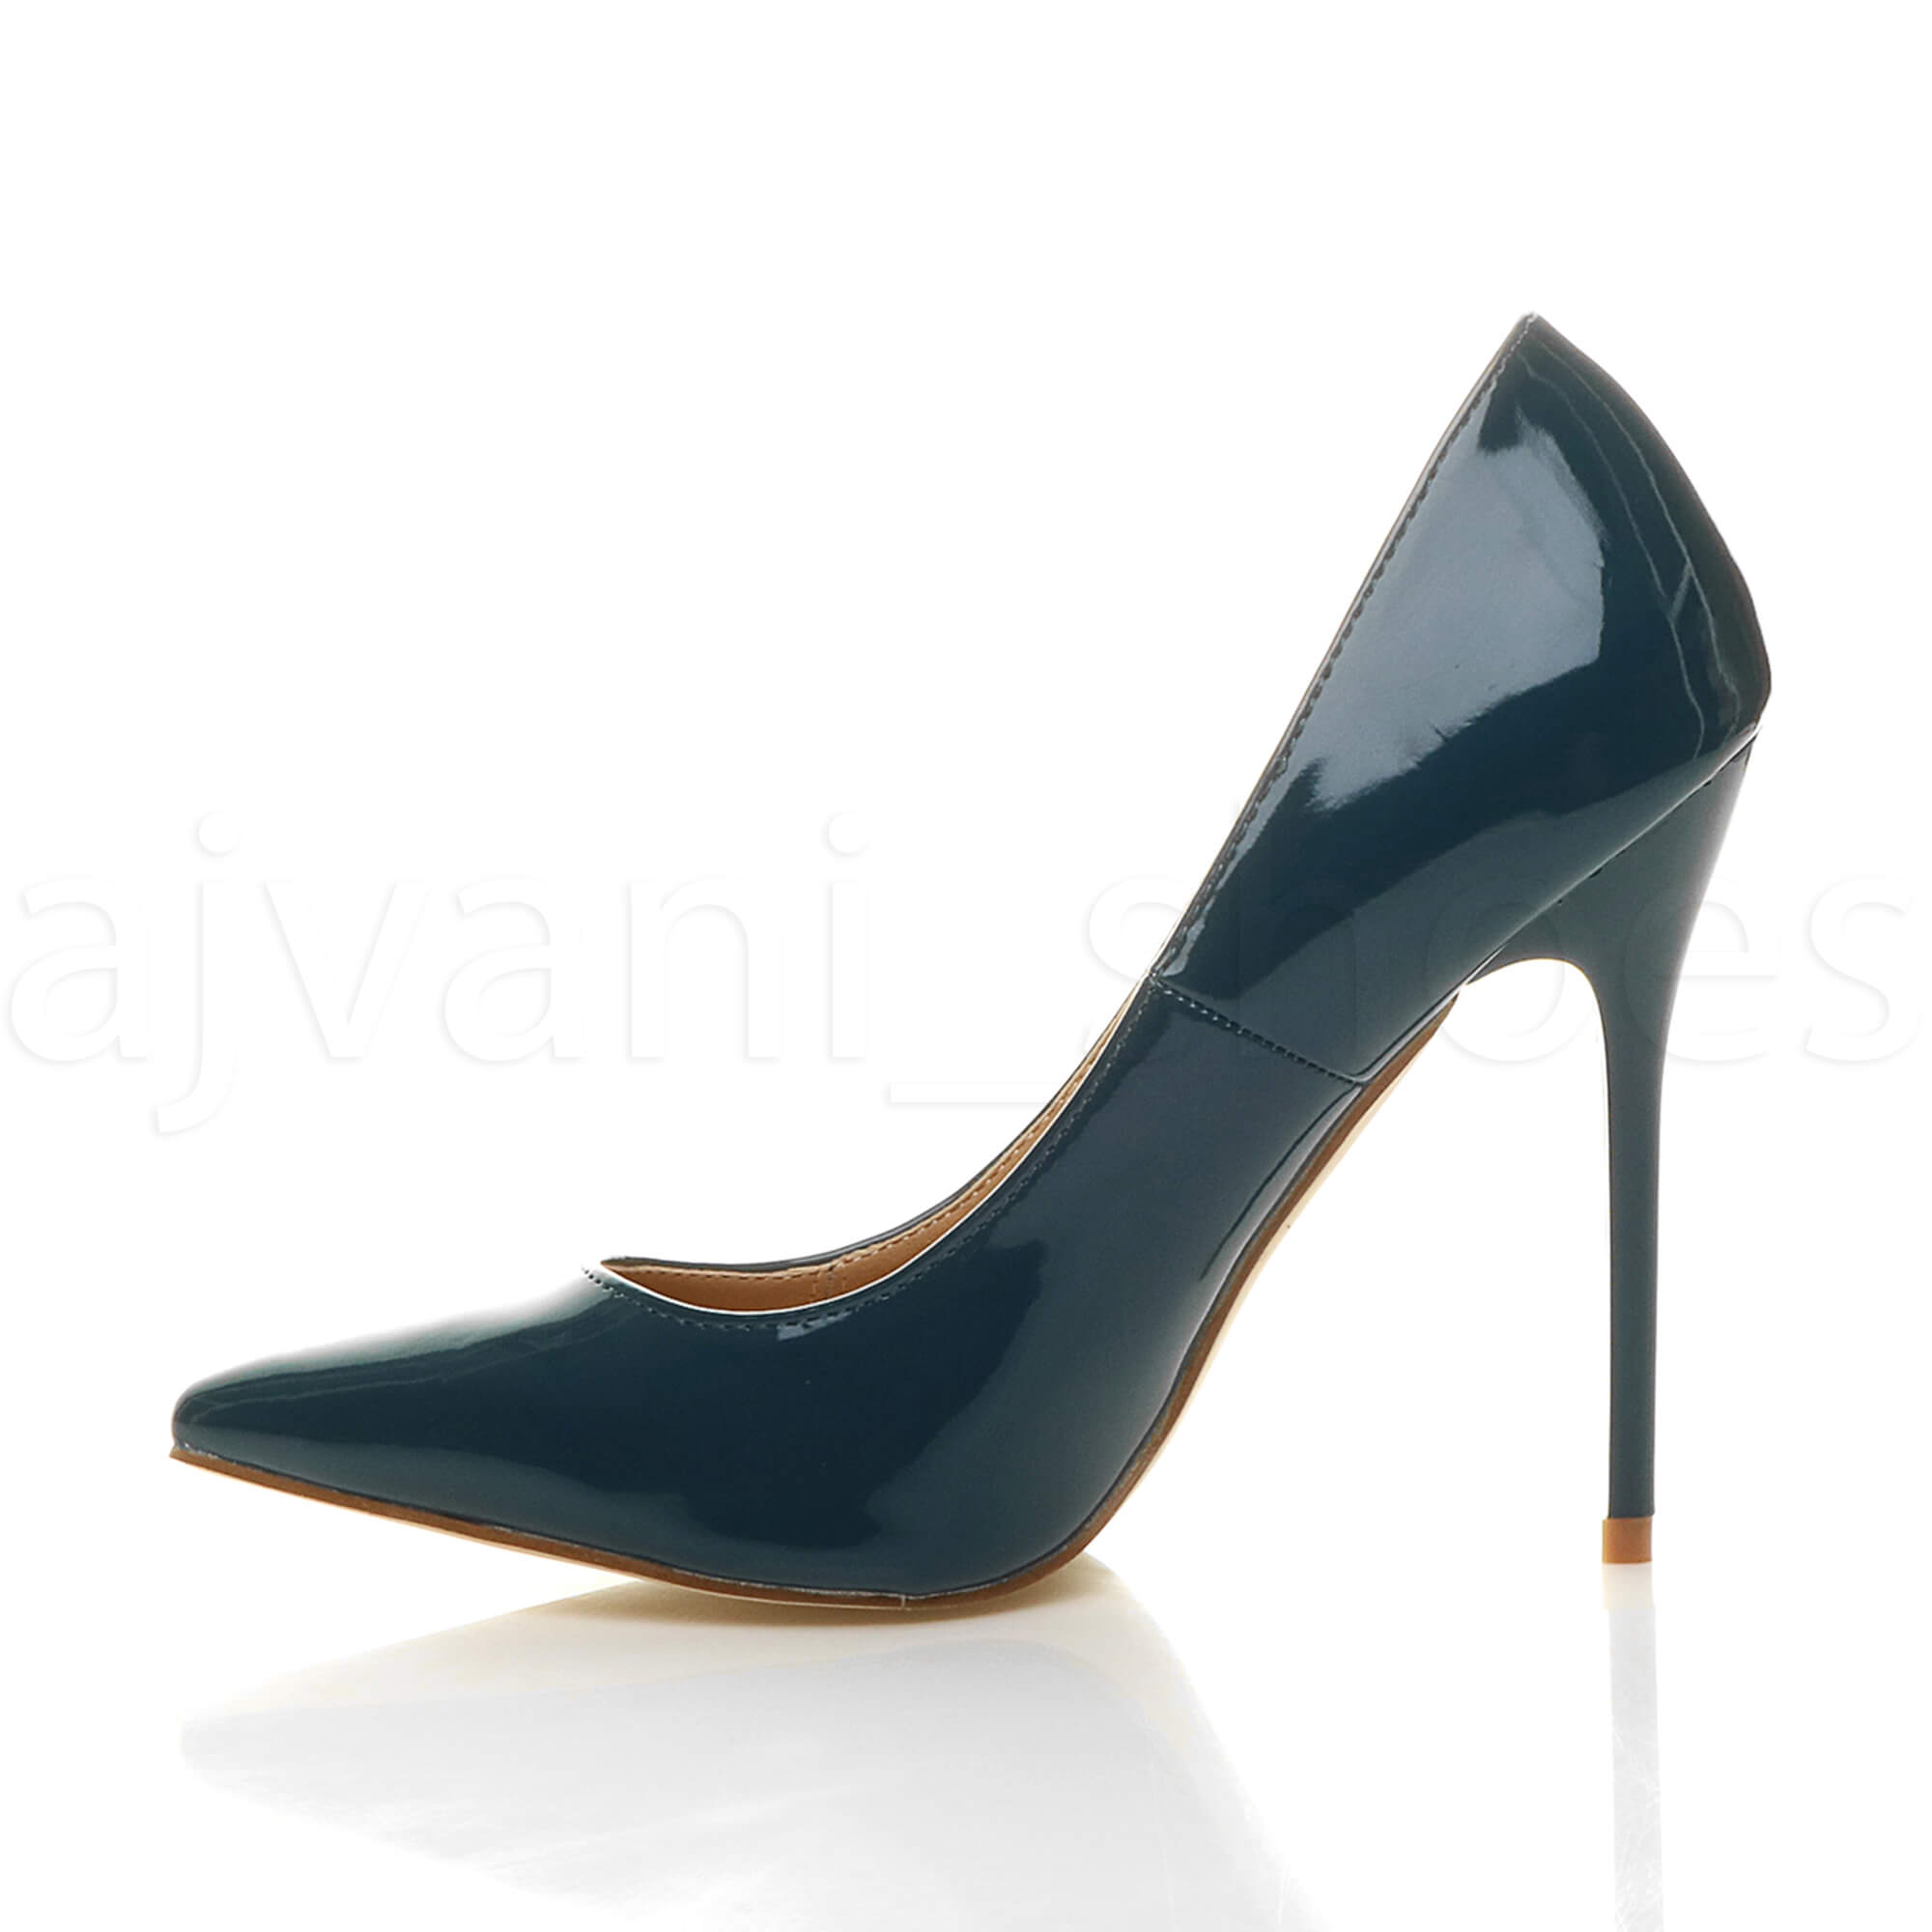 WOMENS-LADIES-HIGH-HEEL-POINTED-CONTRAST-COURT-SMART-PARTY-WORK-SHOES-PUMPS-SIZE thumbnail 233